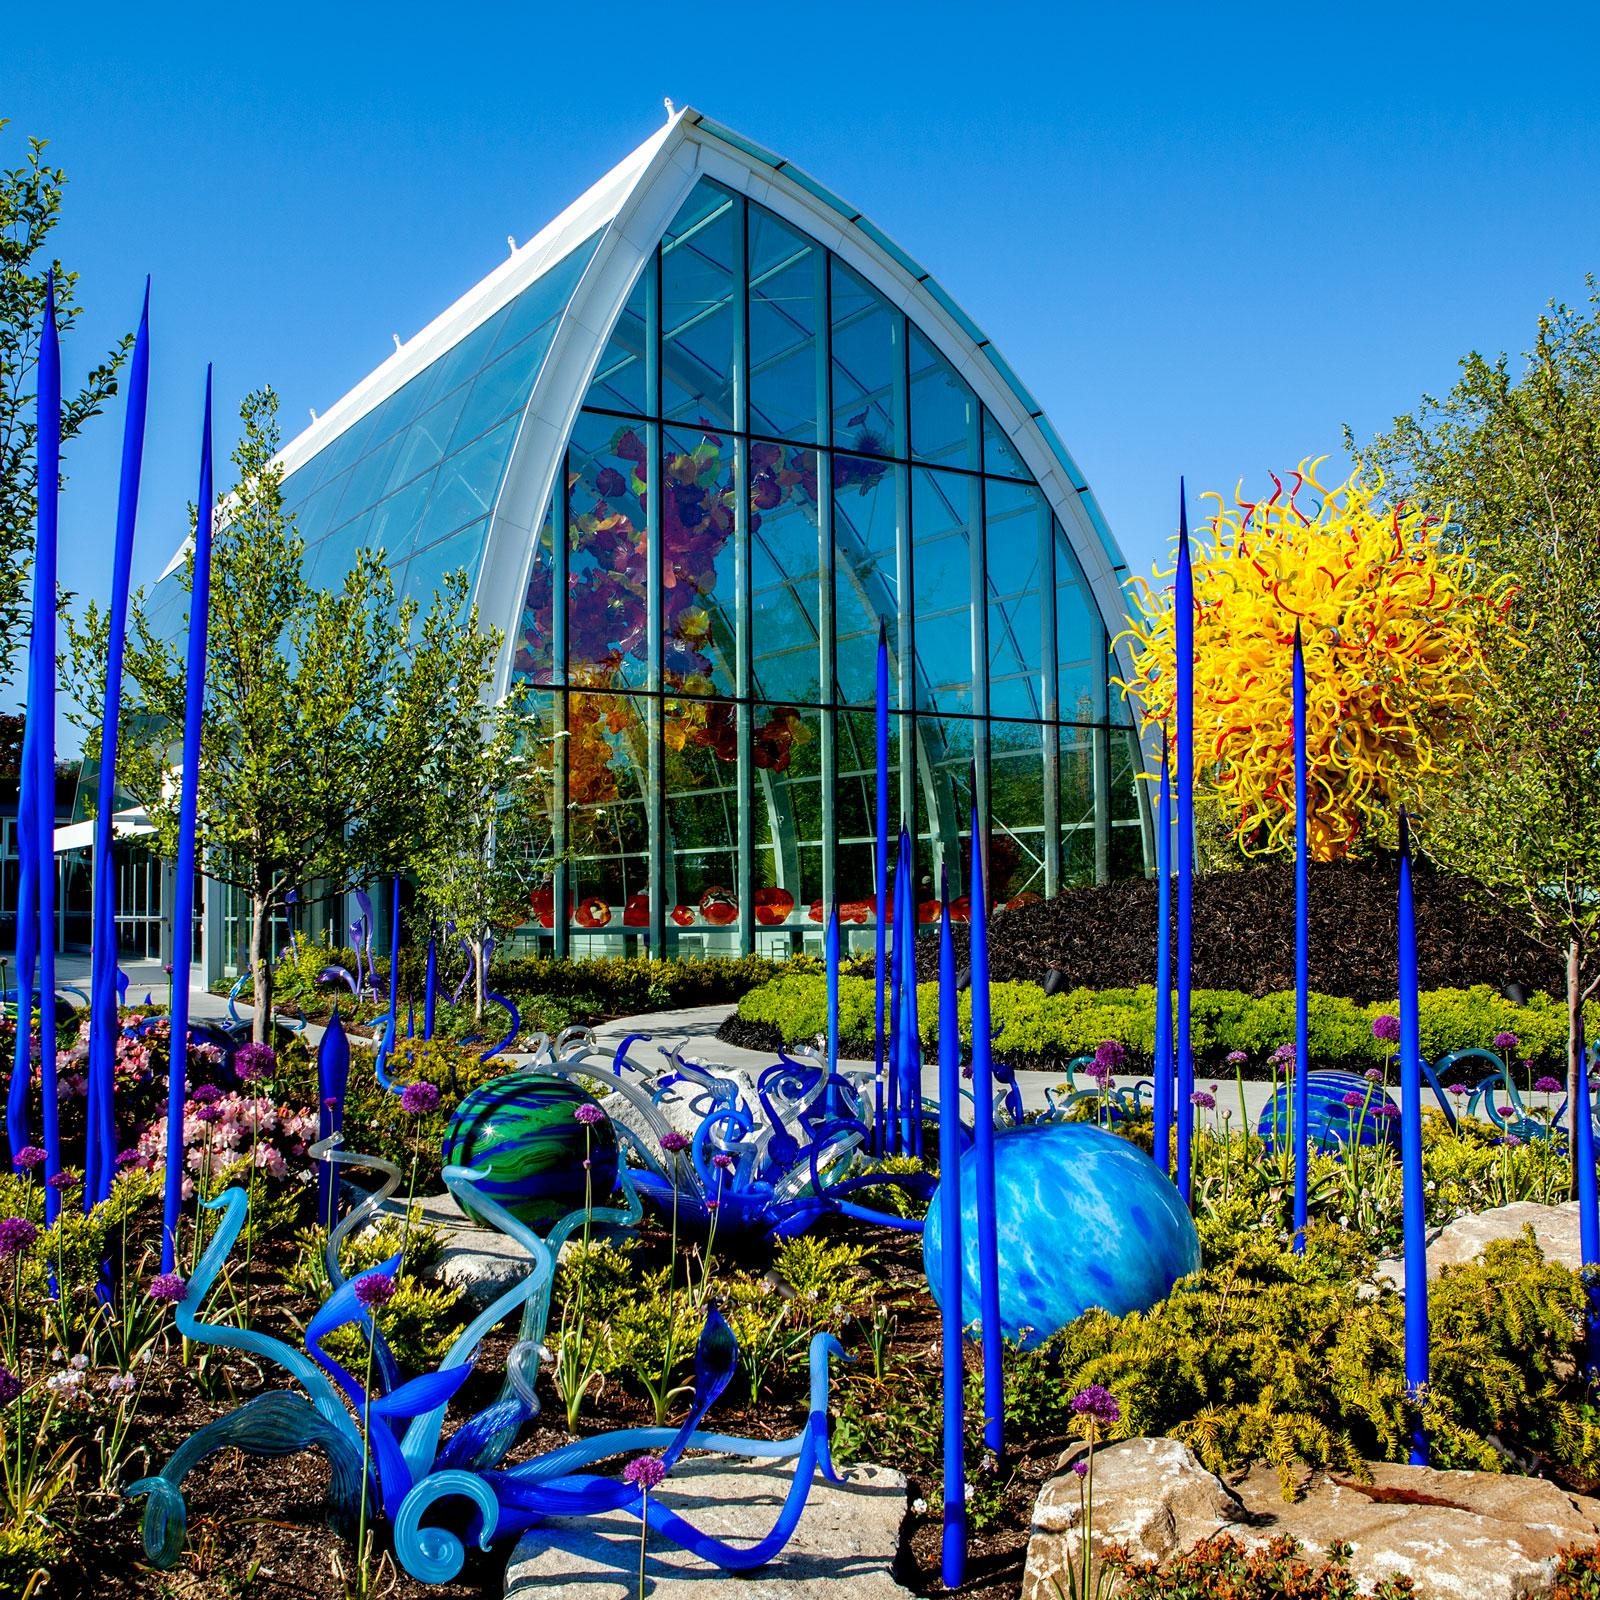 chihuly garden and glass - photo #10